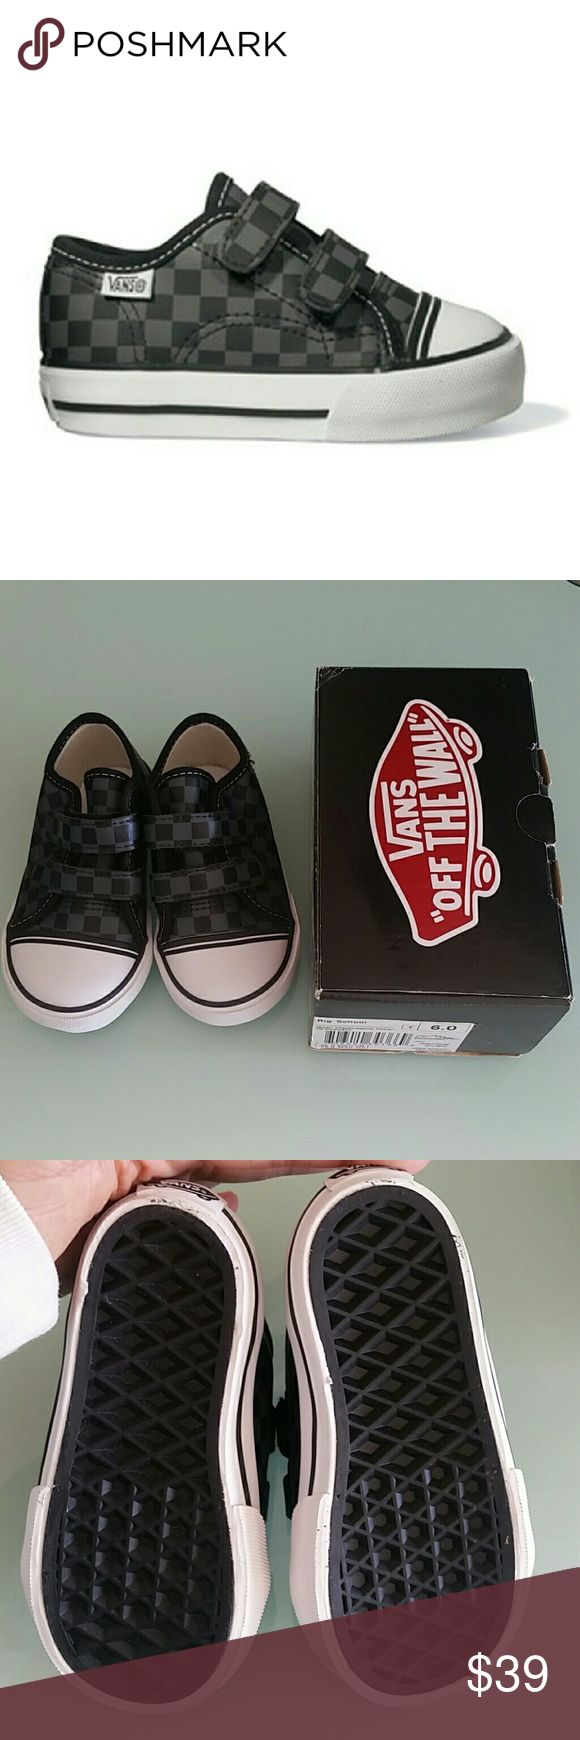 NIB Vans Big School Checkerboard pewter shoes 6 New in box, Vans Big Schoil Small Checkerboard pewter velcro shoes sneakers. Clean soles, never worn. Baby Toddler US size 6 (UK 5.5) Will consider reasonable offers via the offer tab, thank you! Vans Shoes Sneakers